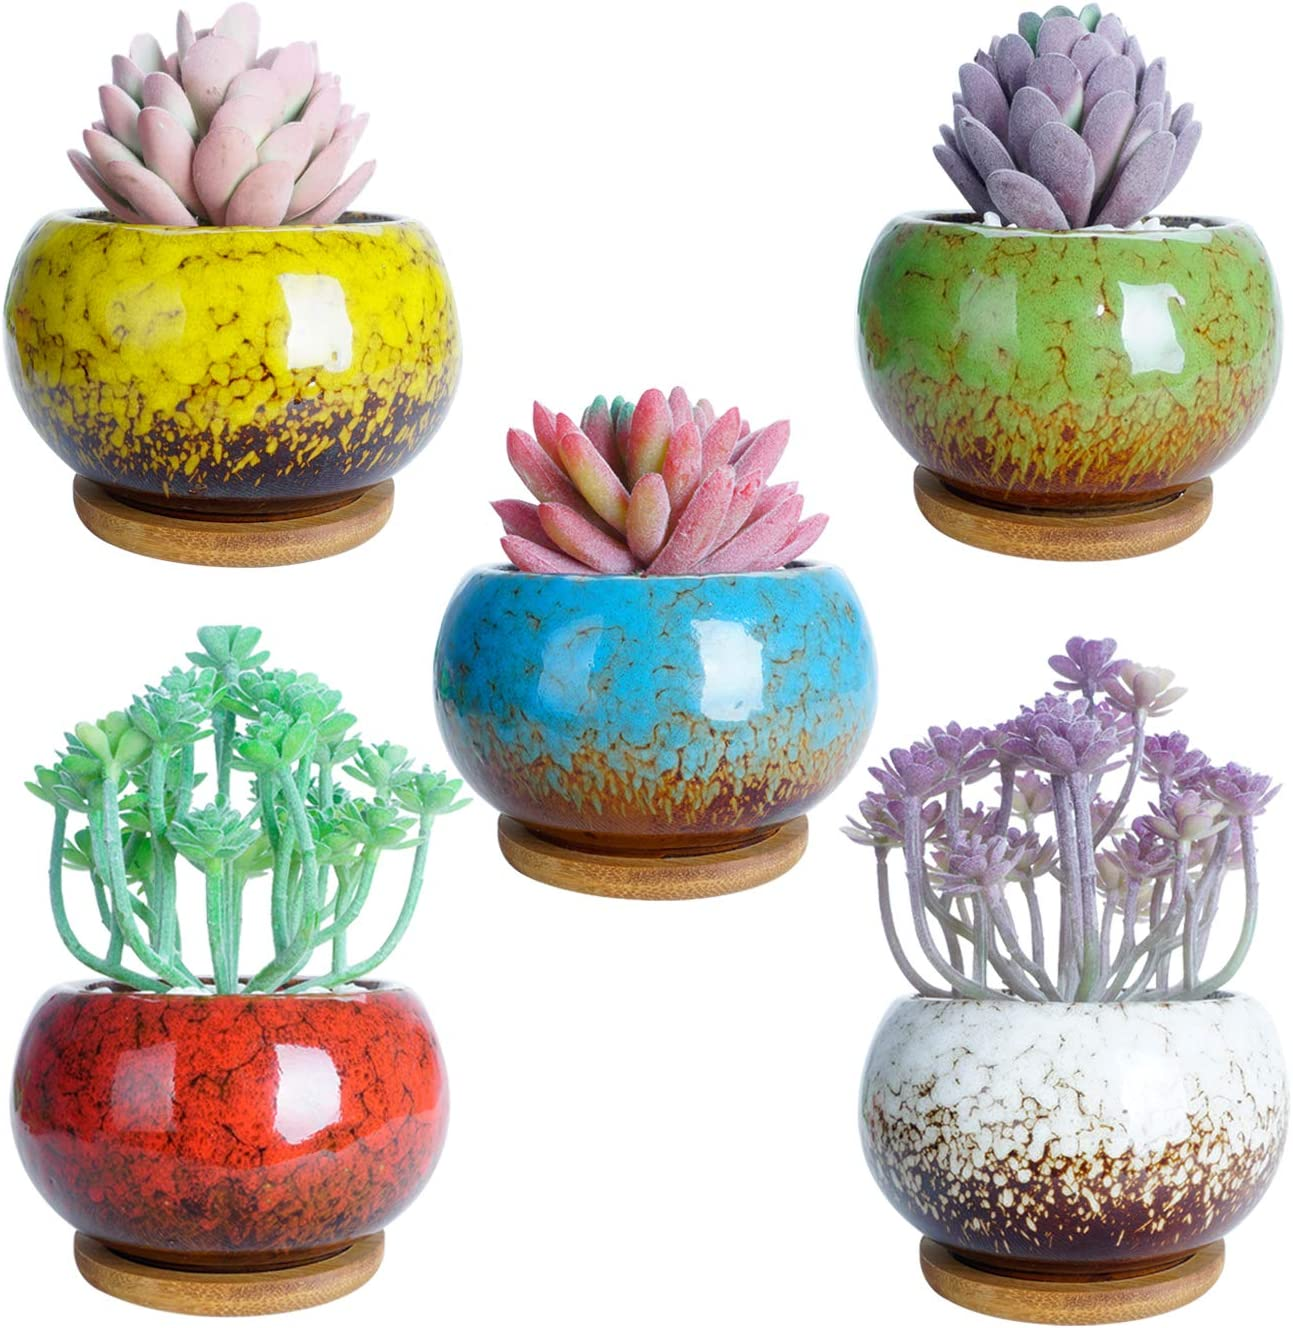 ARTKETTY 4.4 inch Succulent Plant Pots, Small Ceramic Cactus Planter Pots with Bamboo Tray Modern Round Glazed Flower Pot Tiny Plants Container Perfect for Decorating Home and Office Pack of 5